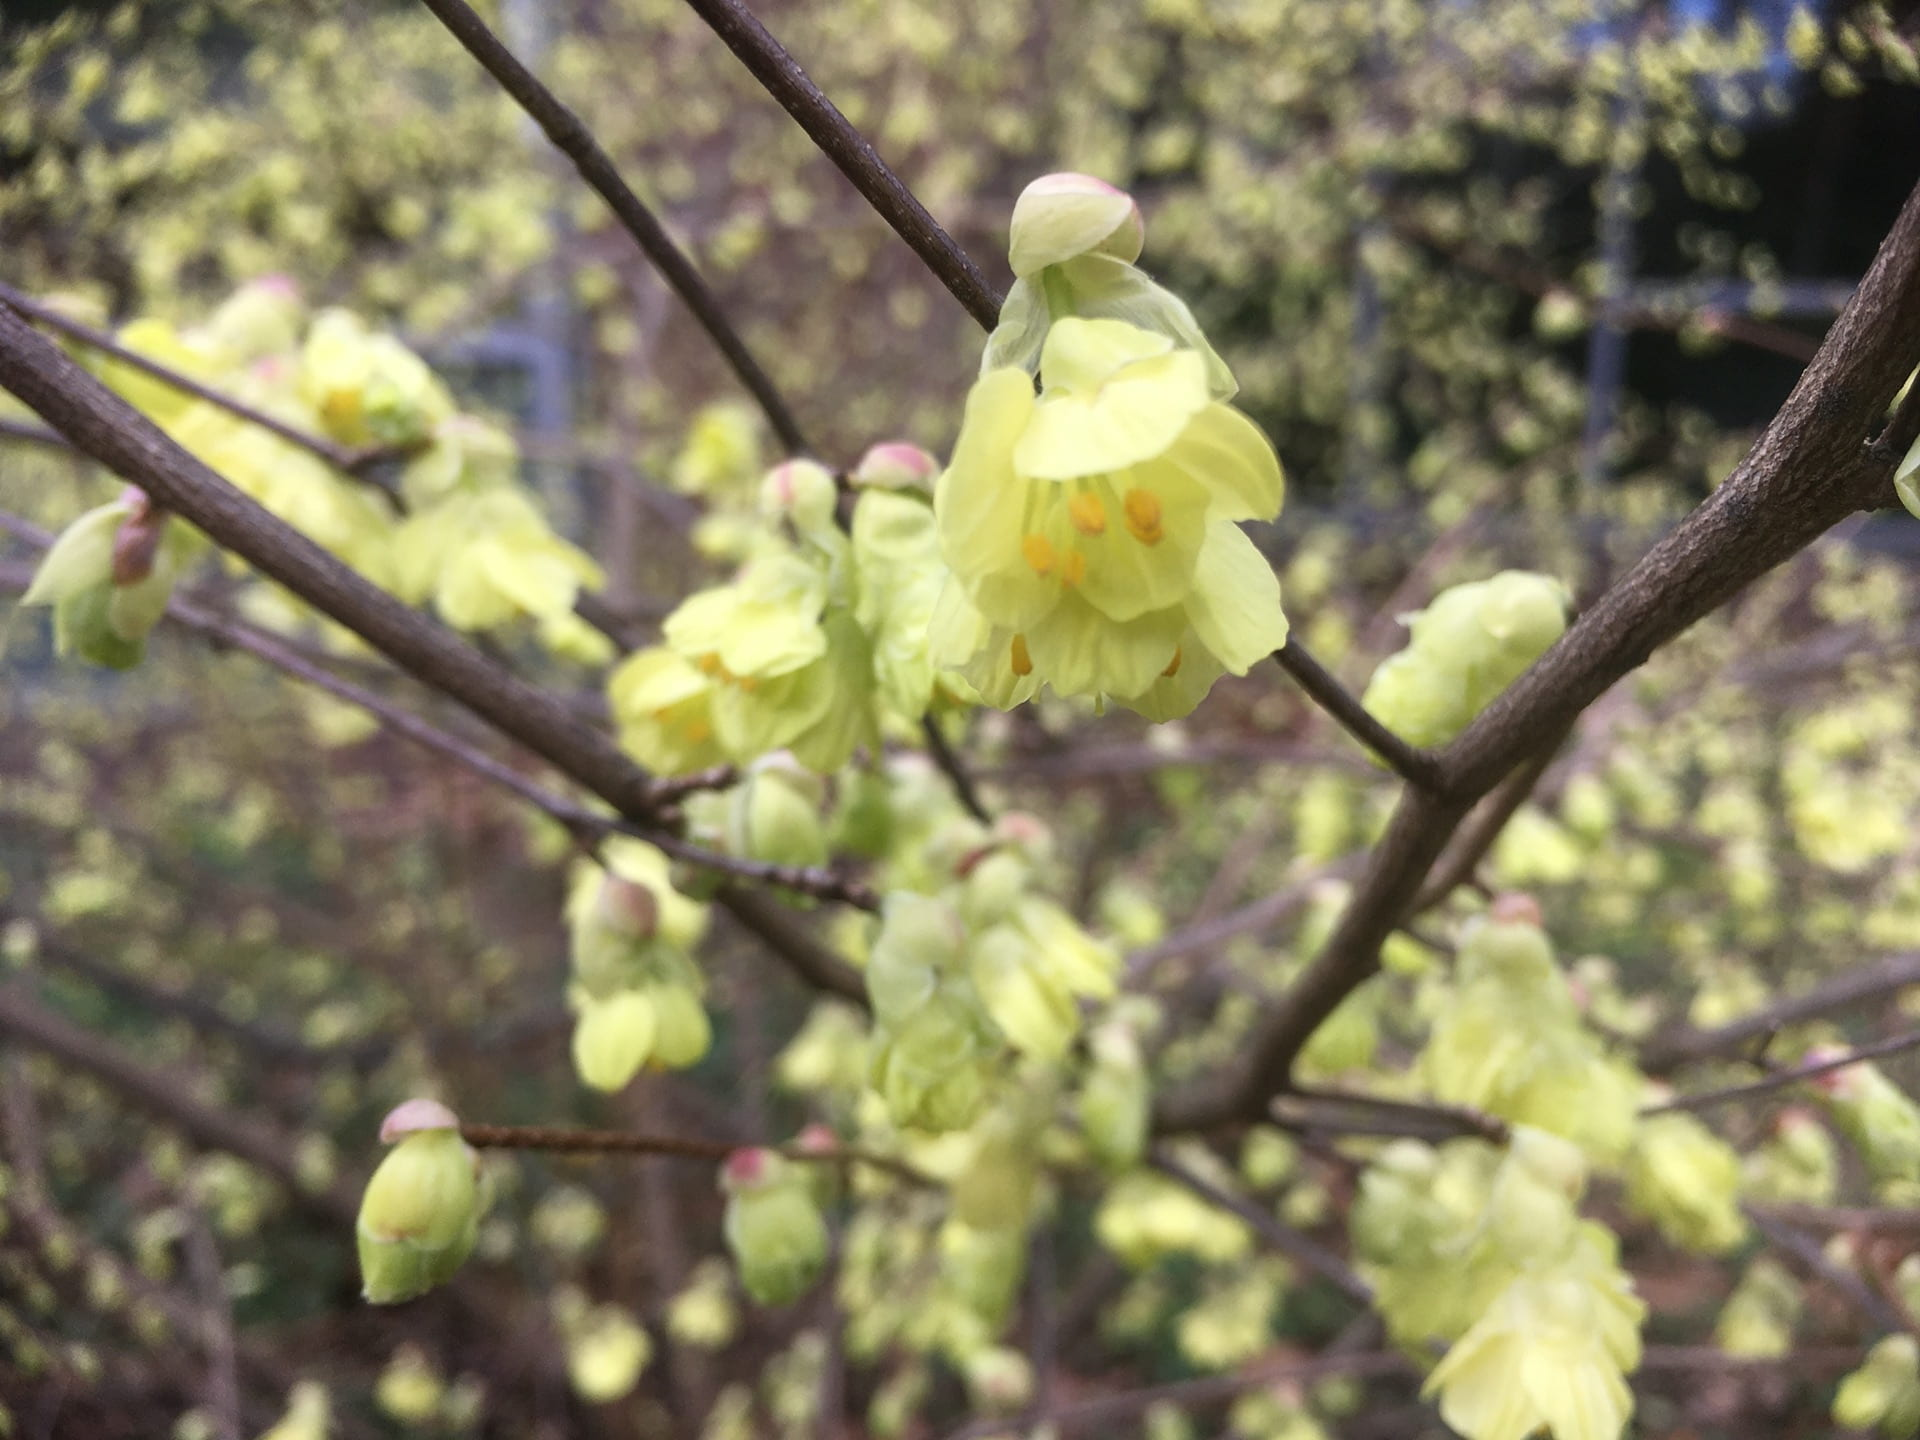 An up close view of the graceful Corylopsis flowers.